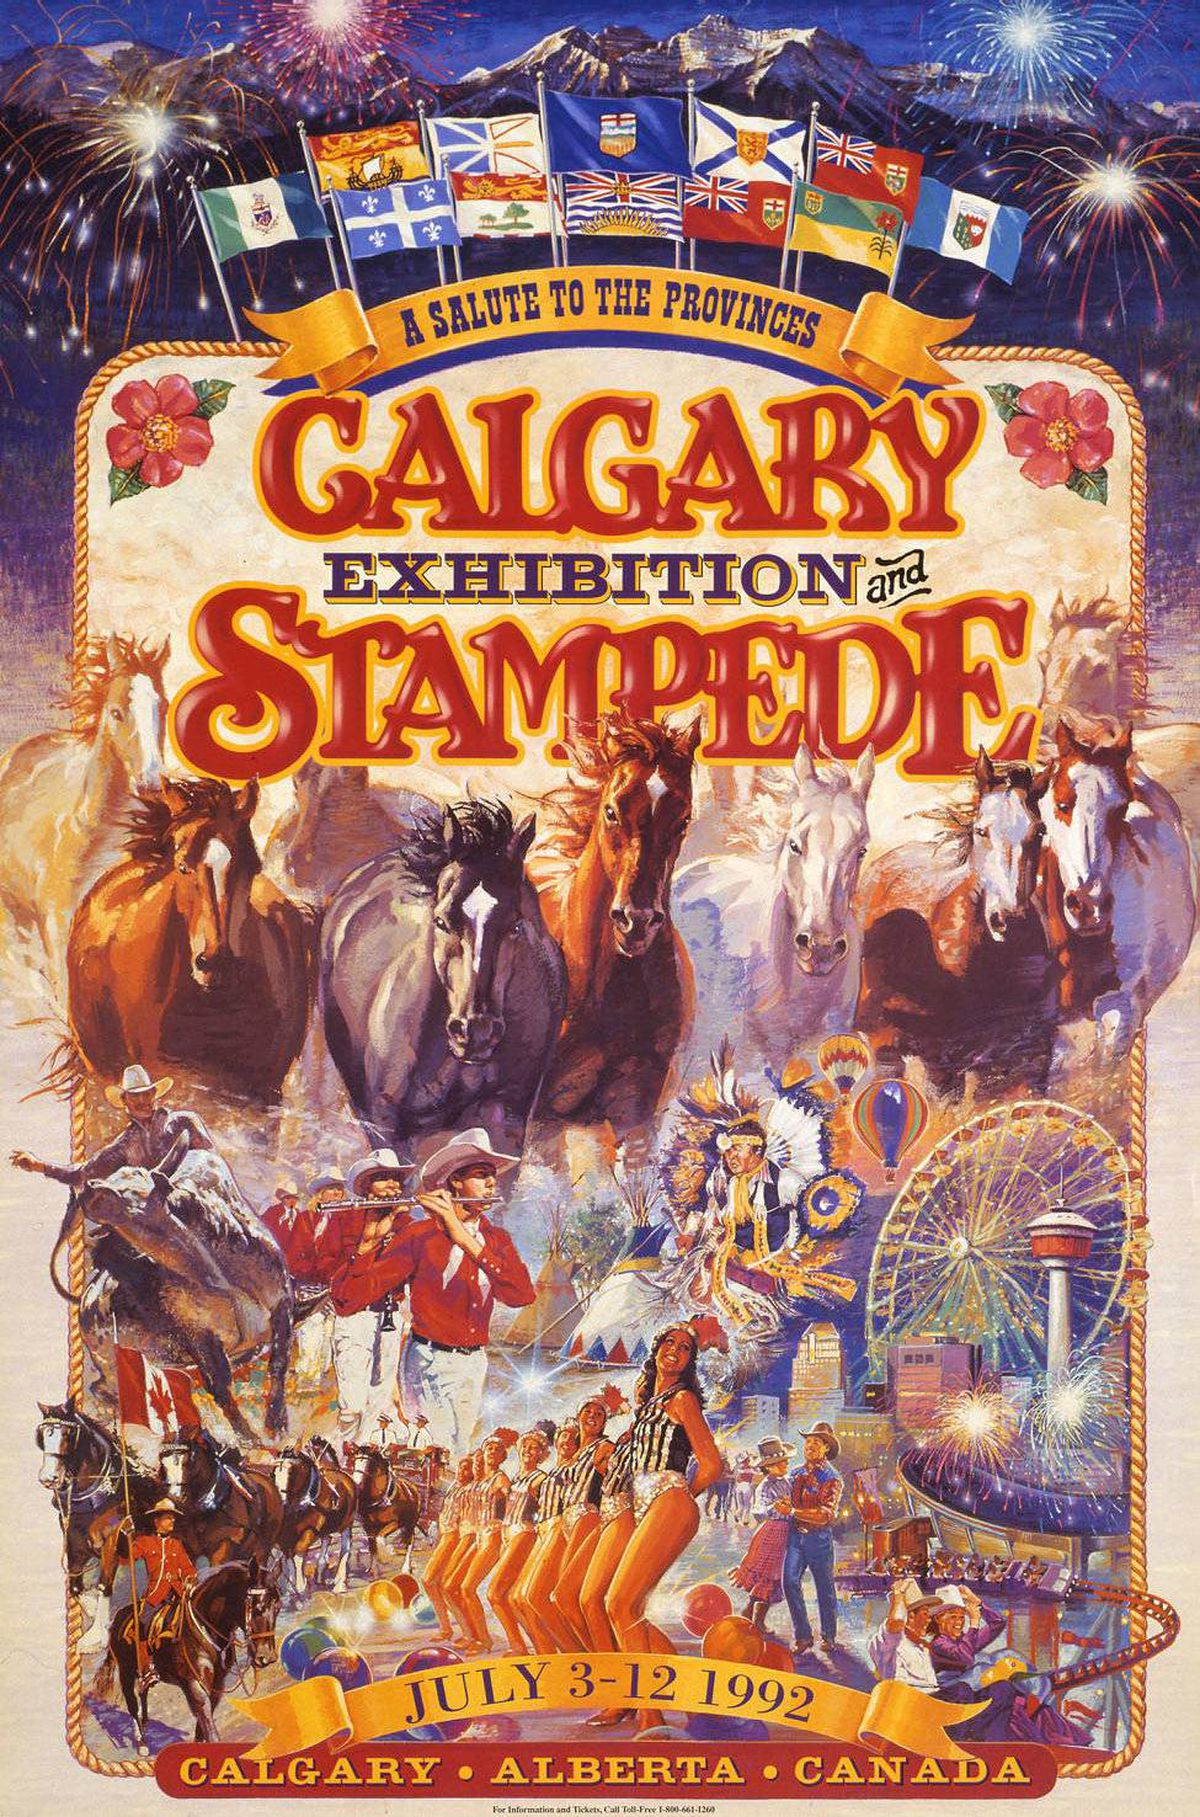 Archival images of Calgary Stampede posters over the years.